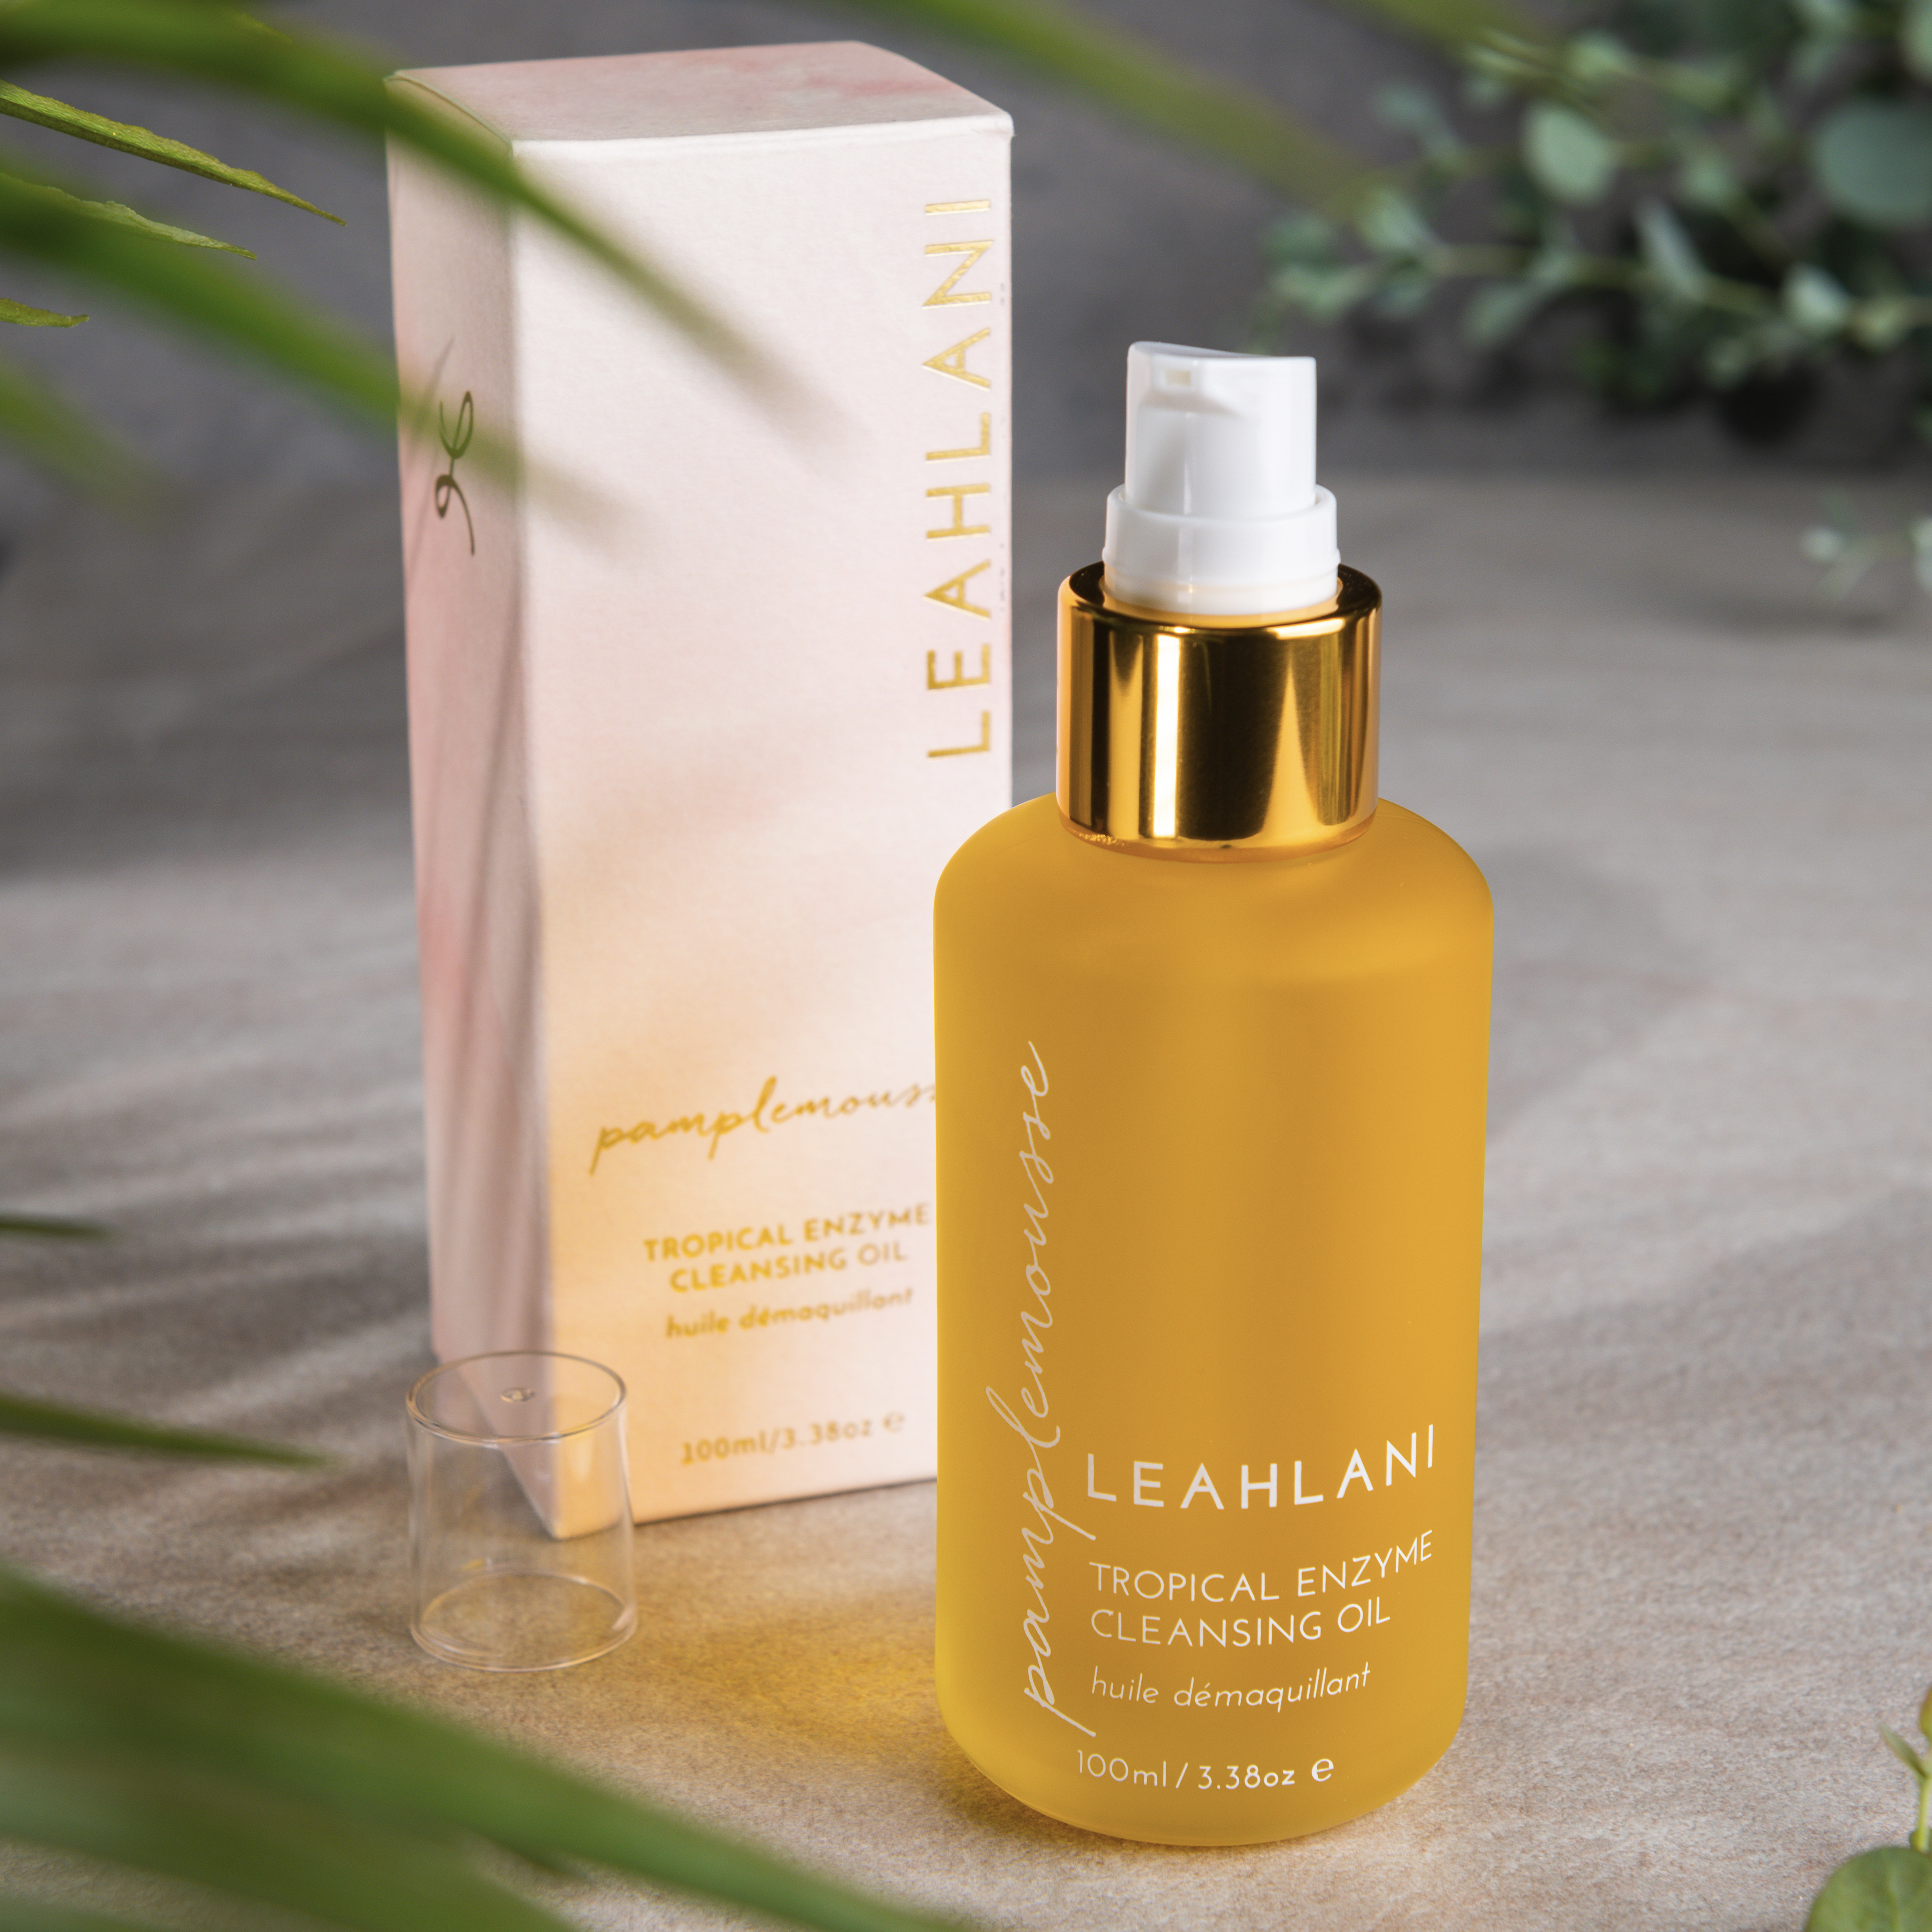 Pampelmousse Tropical Enzyme Cleansing Oil